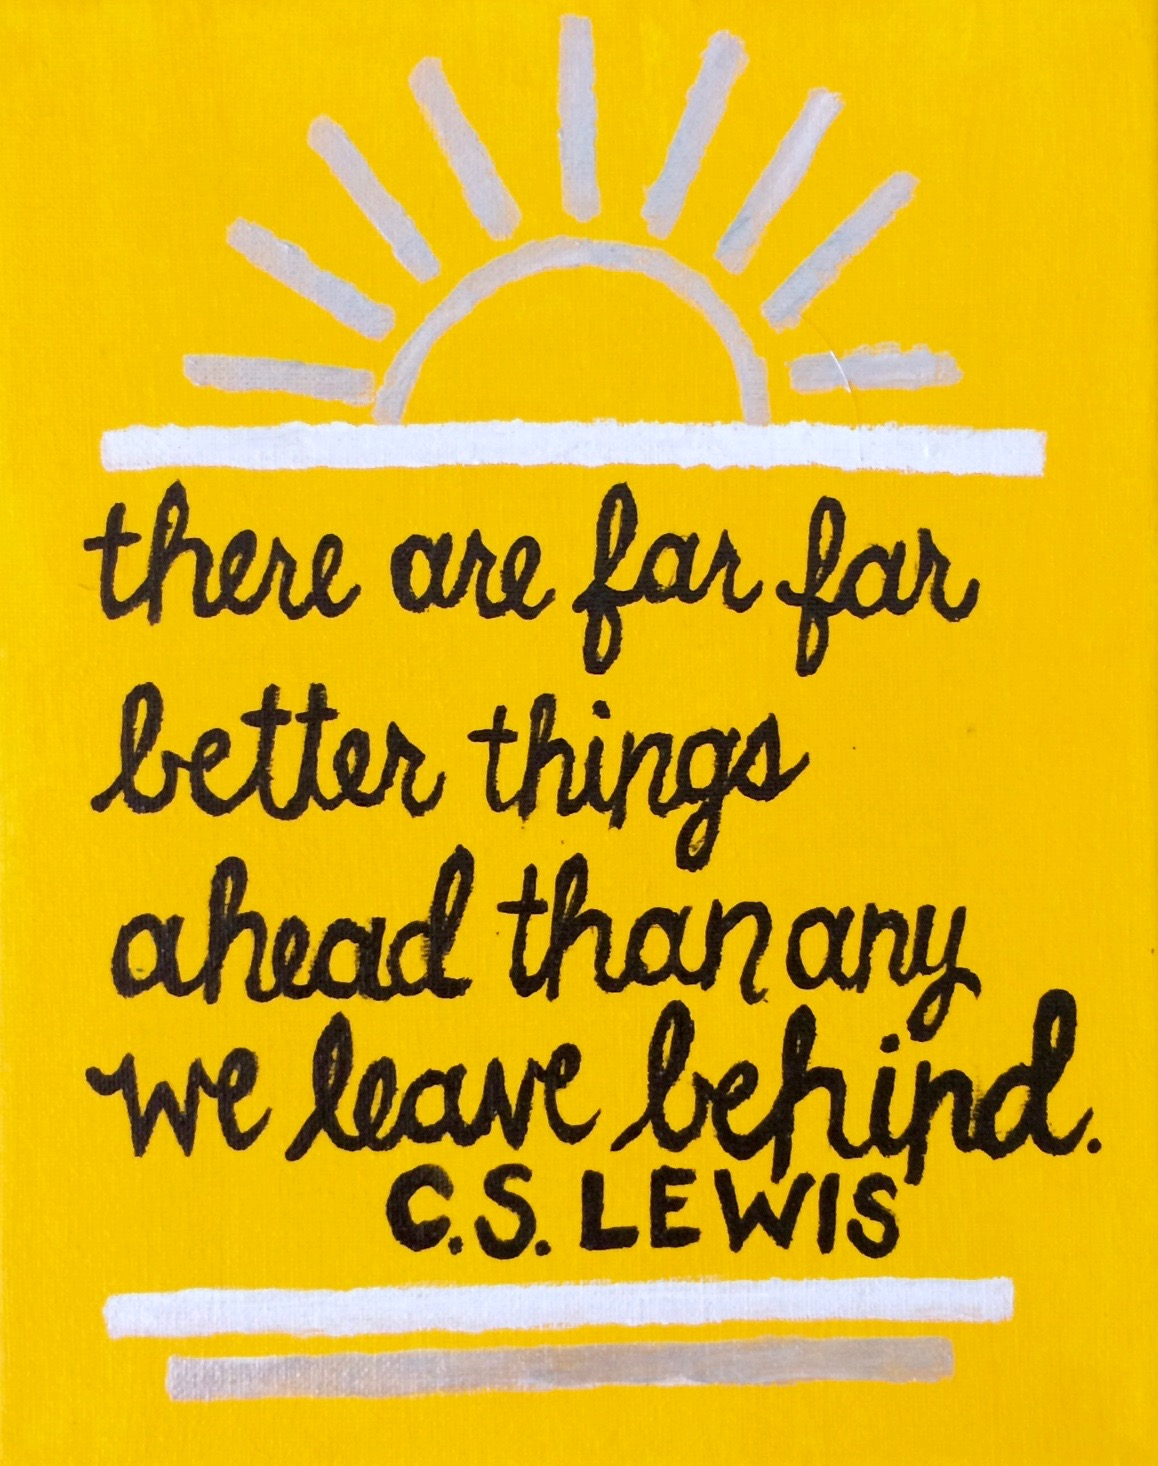 Quote CS Lewis.jpg